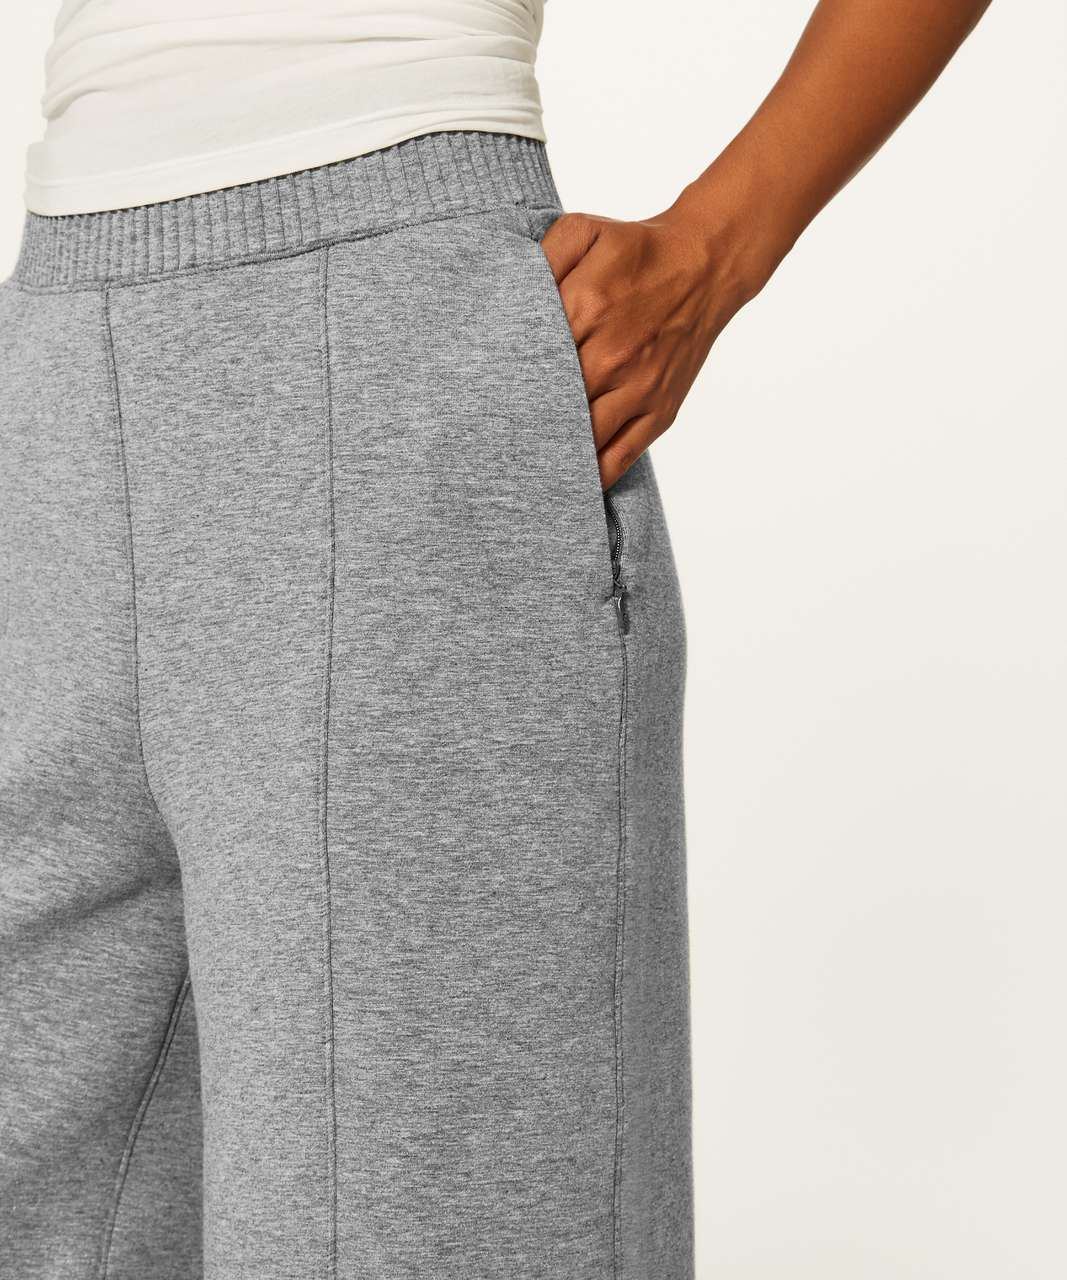 "Lululemon New Form Crop (17"") - Heathered Medium Grey / Black"